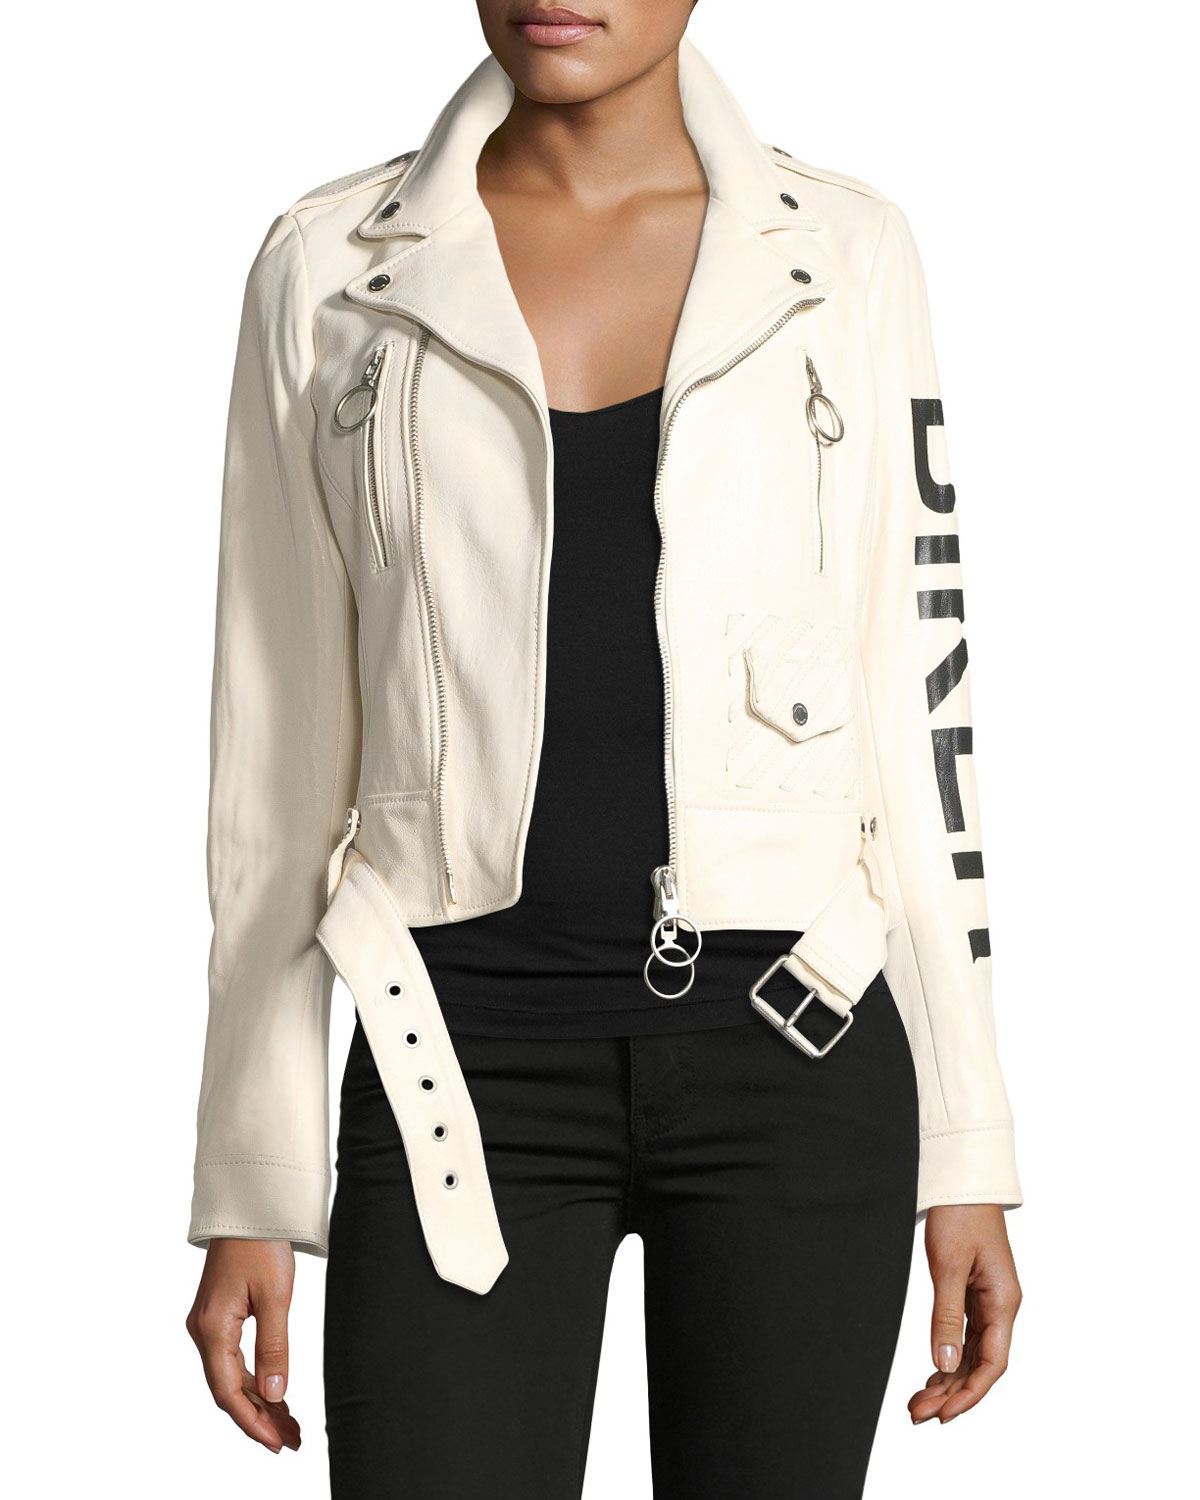 3f8491b67 Leather Biker Jacket with Graphic